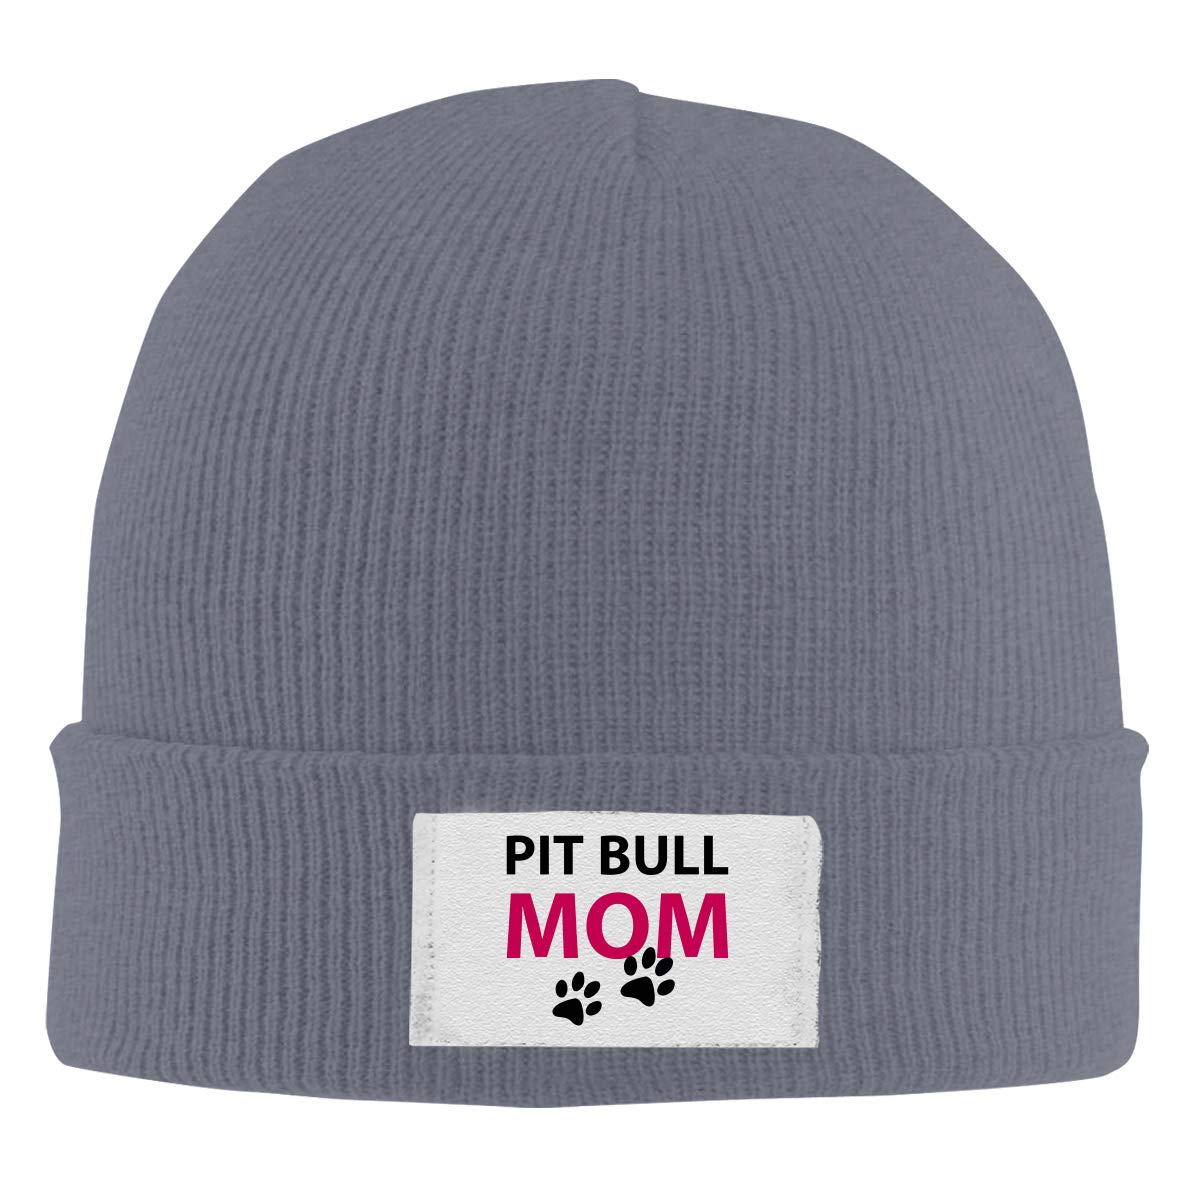 Unisex Stylish Slouch Beanie Hats Black Pit Bull Mom Top Level Beanie Men Women